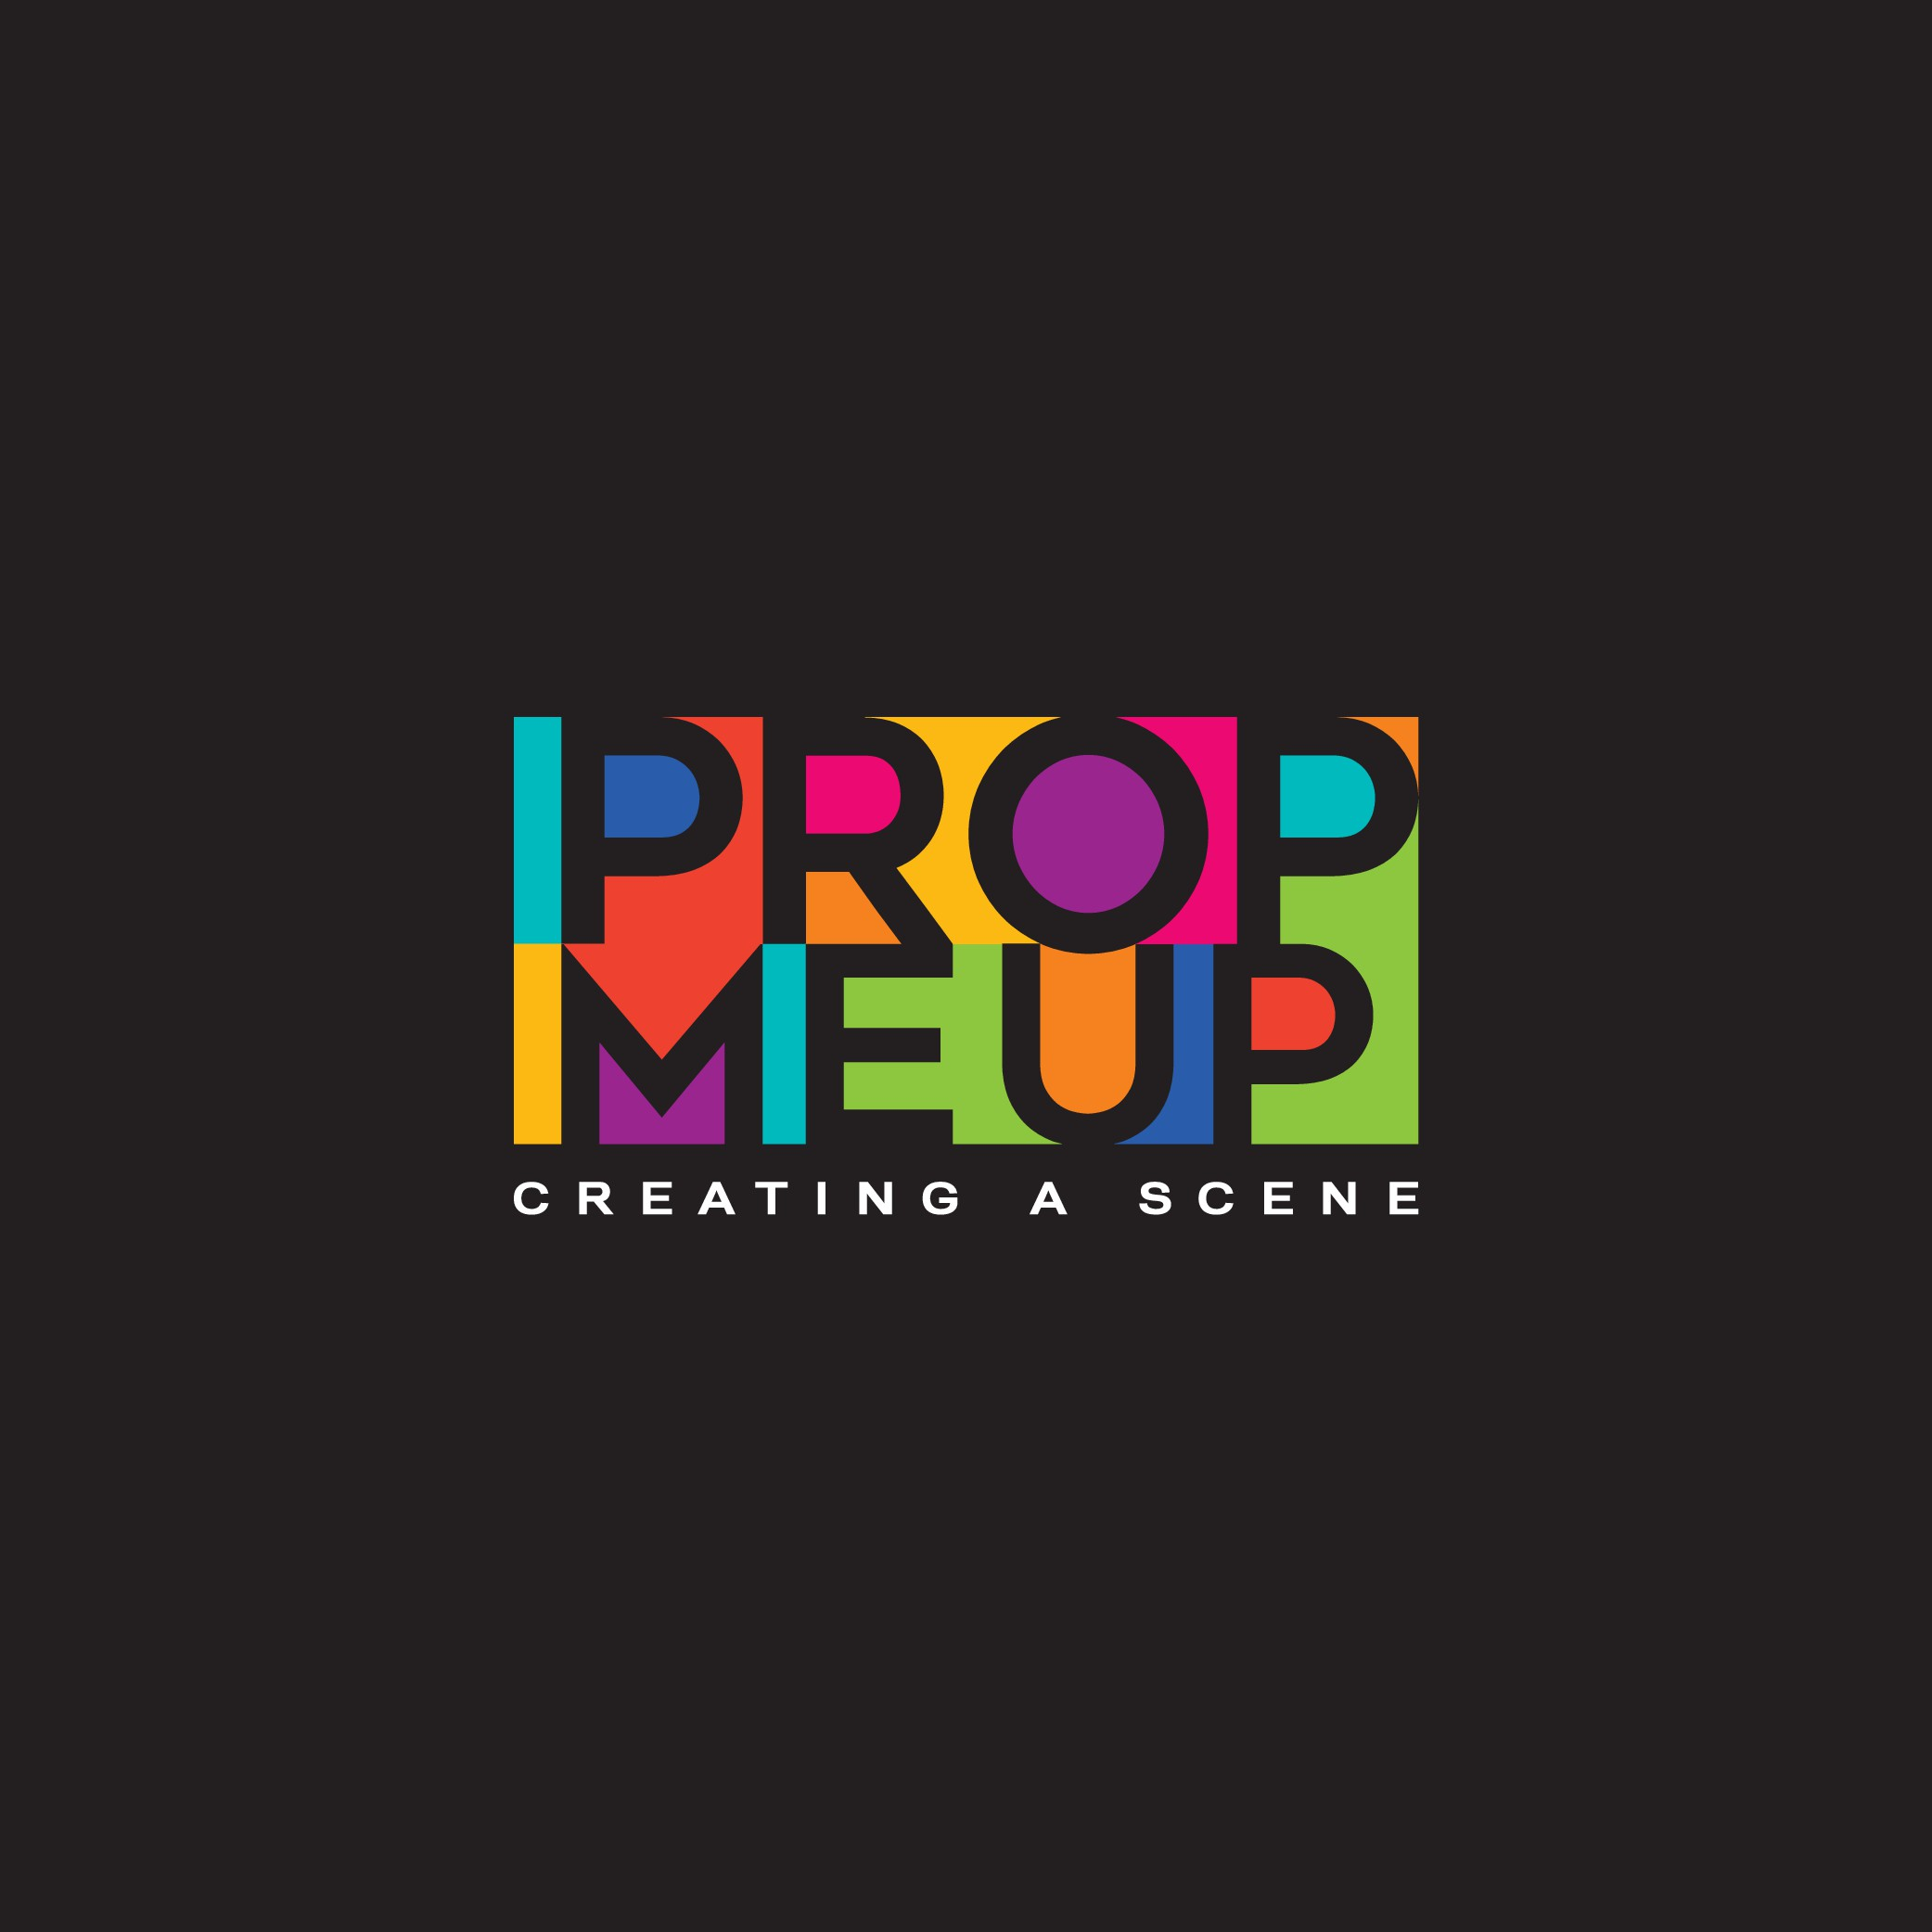 Events & Production Company needs a refresh of its existing Logo.